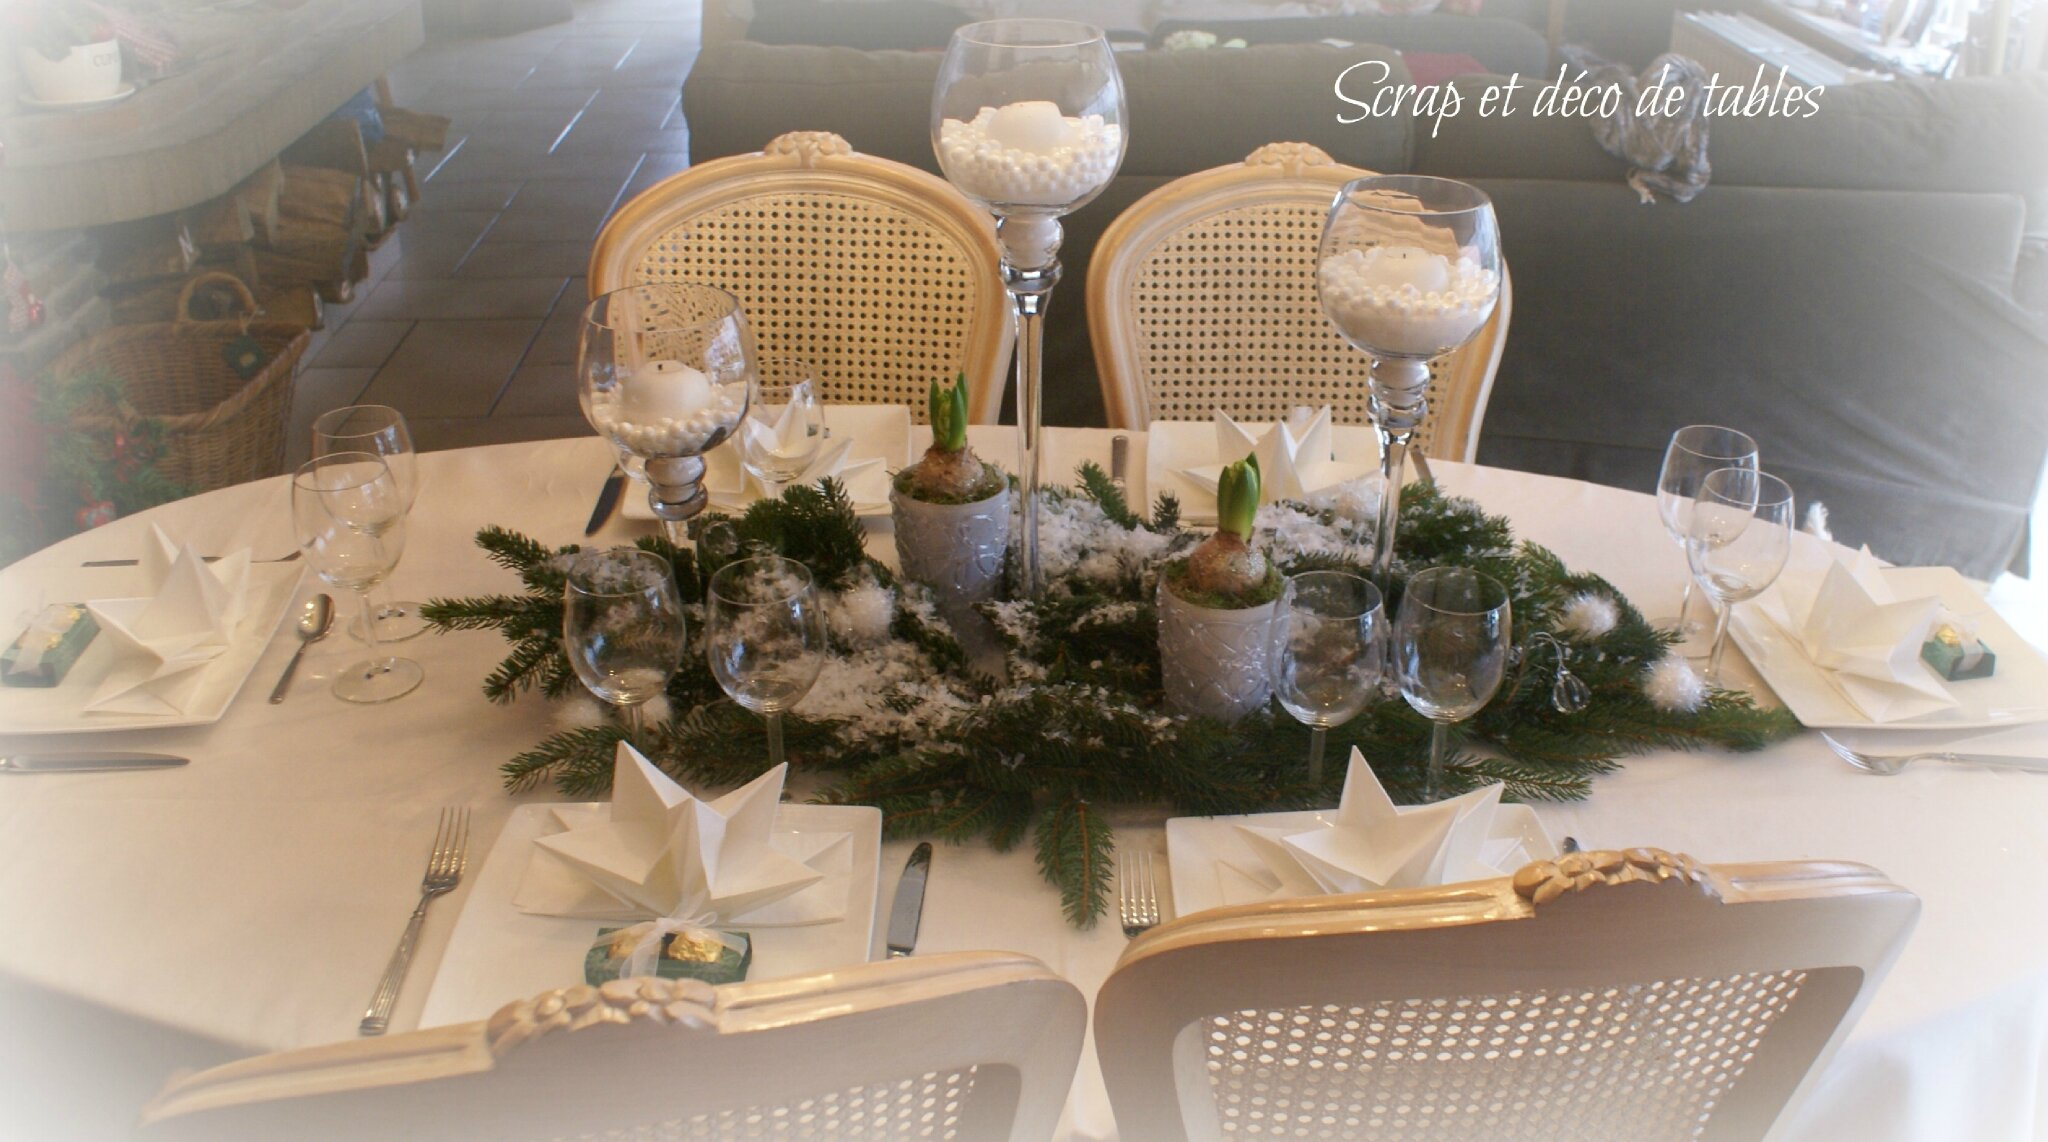 #8D683E DECO TABLE DE NOËL EN BLANC Scrap Et Déco De Tables 6177 décoration de table de noel bleu et blanc 2048x1142 px @ aertt.com